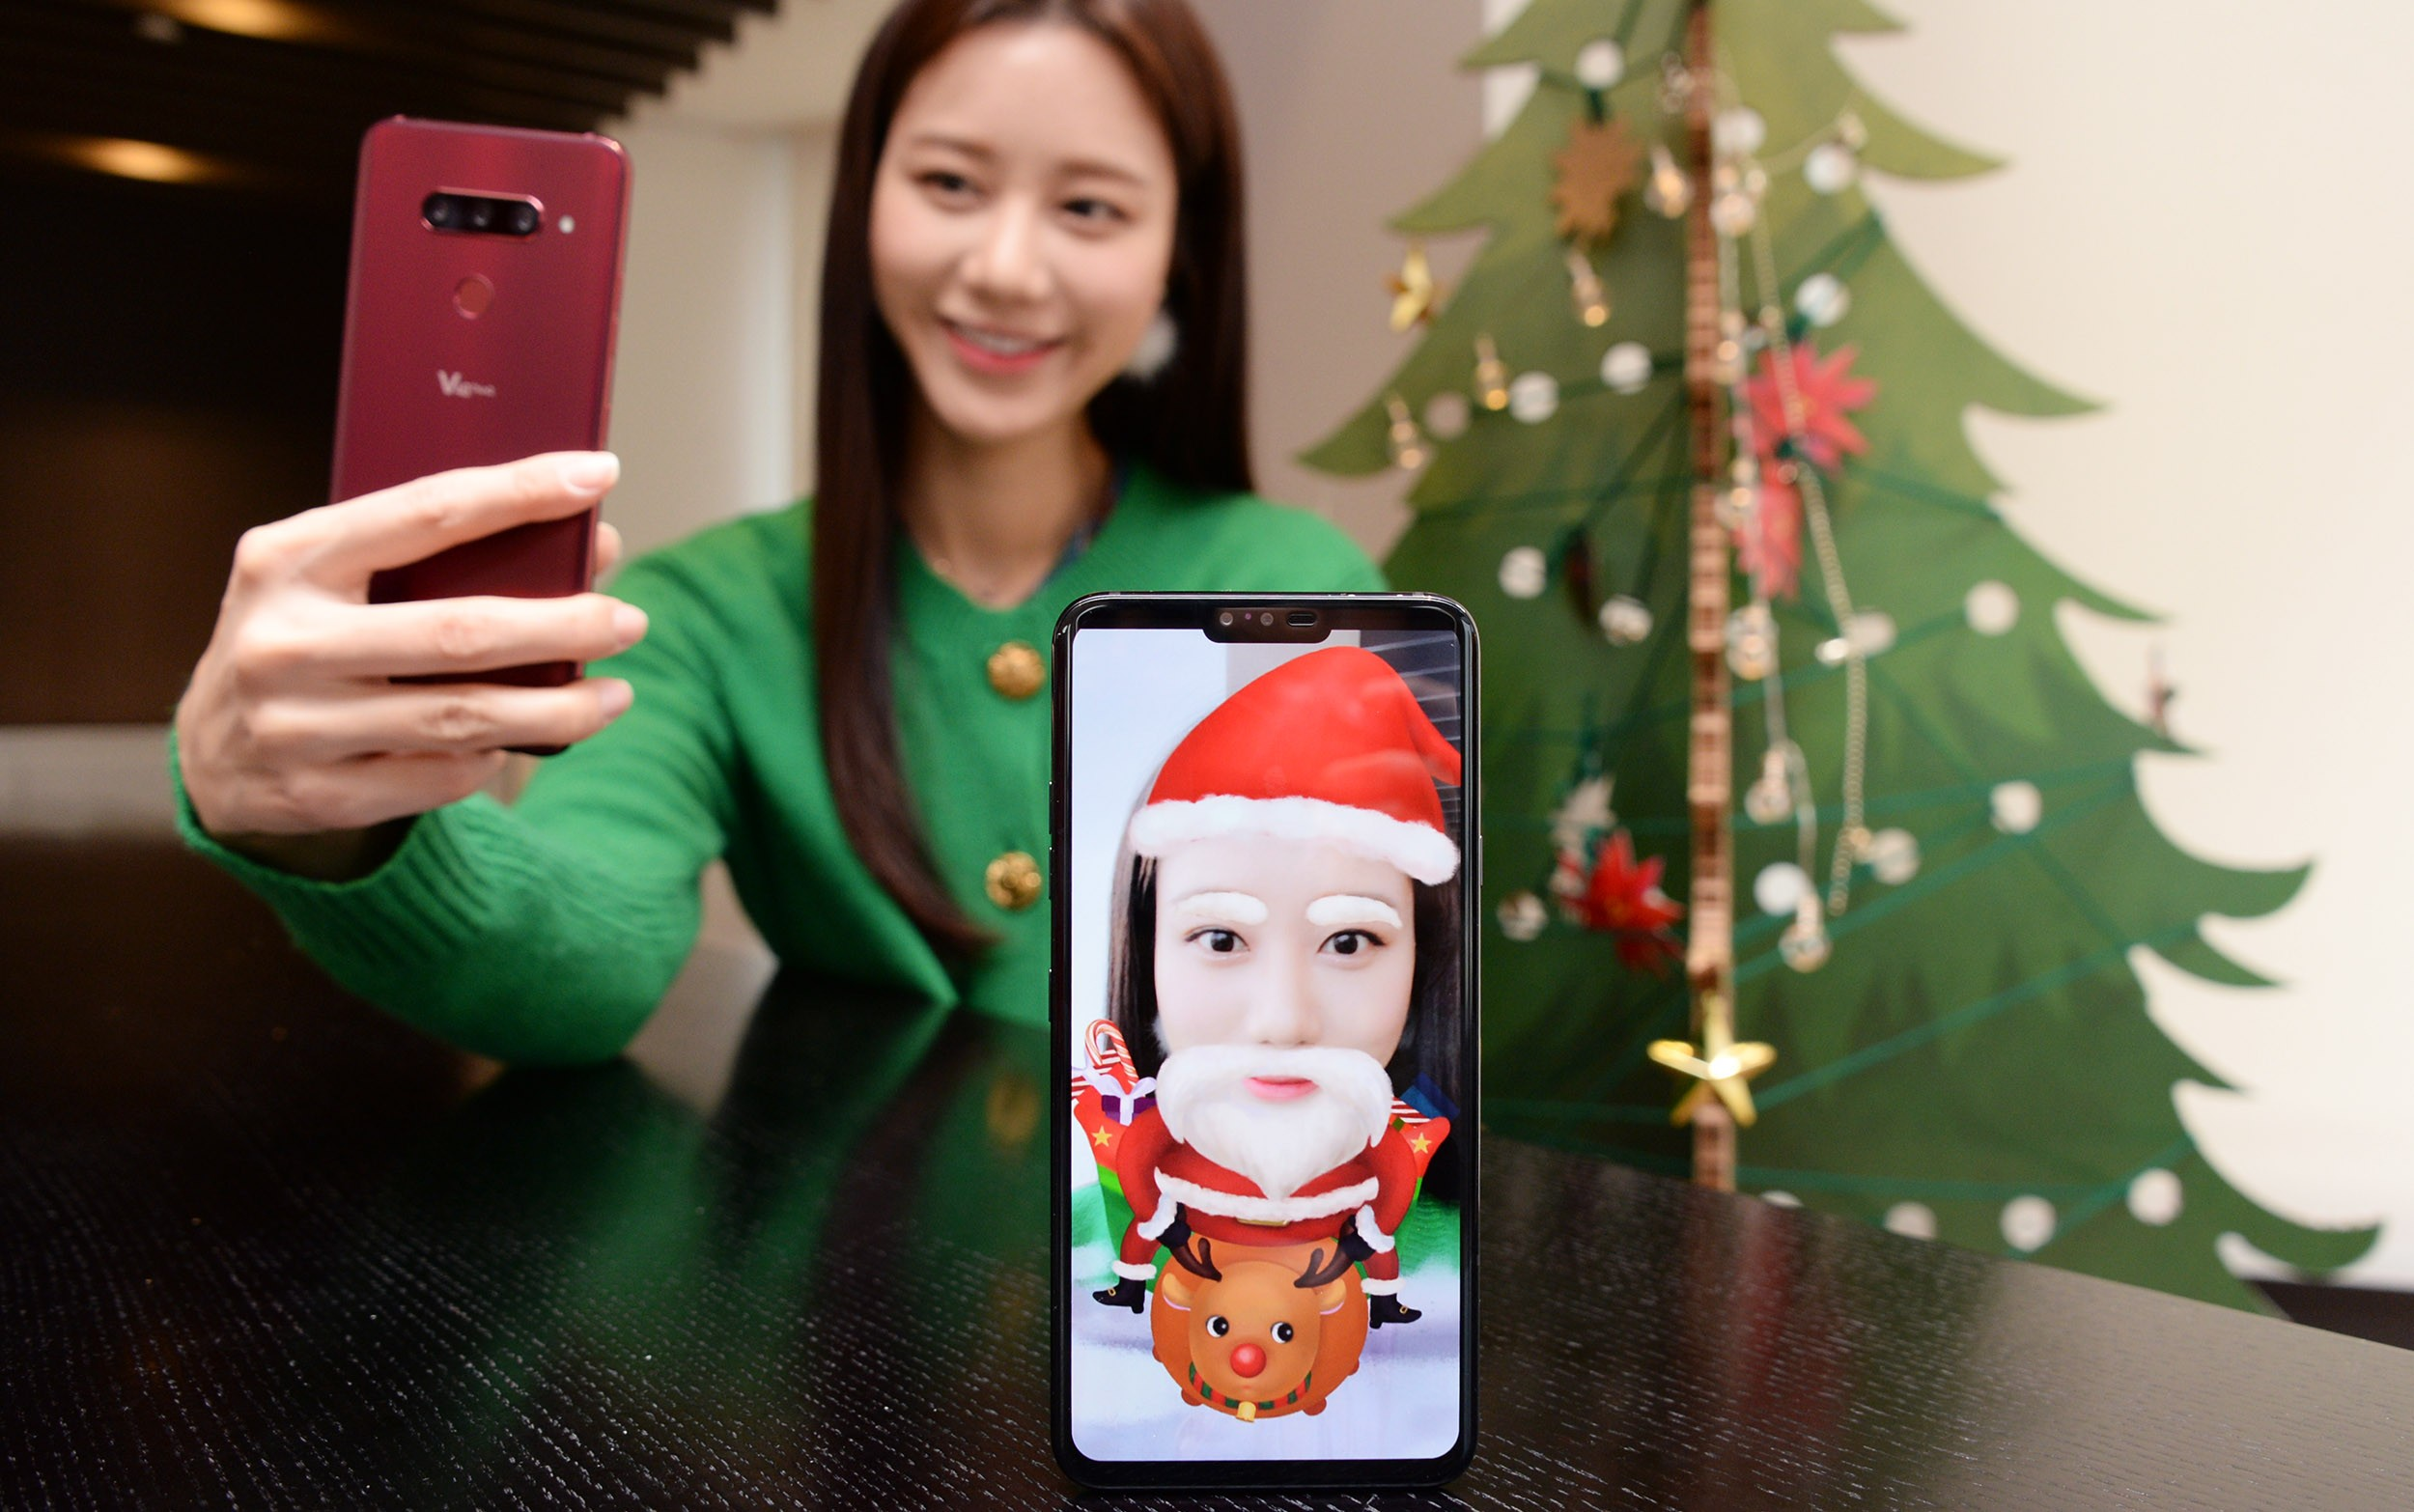 A woman turns her selfie into a Santa Claus lookalike by using the Augmented Reality (AR) sticker function of LG V40 ThinQ.